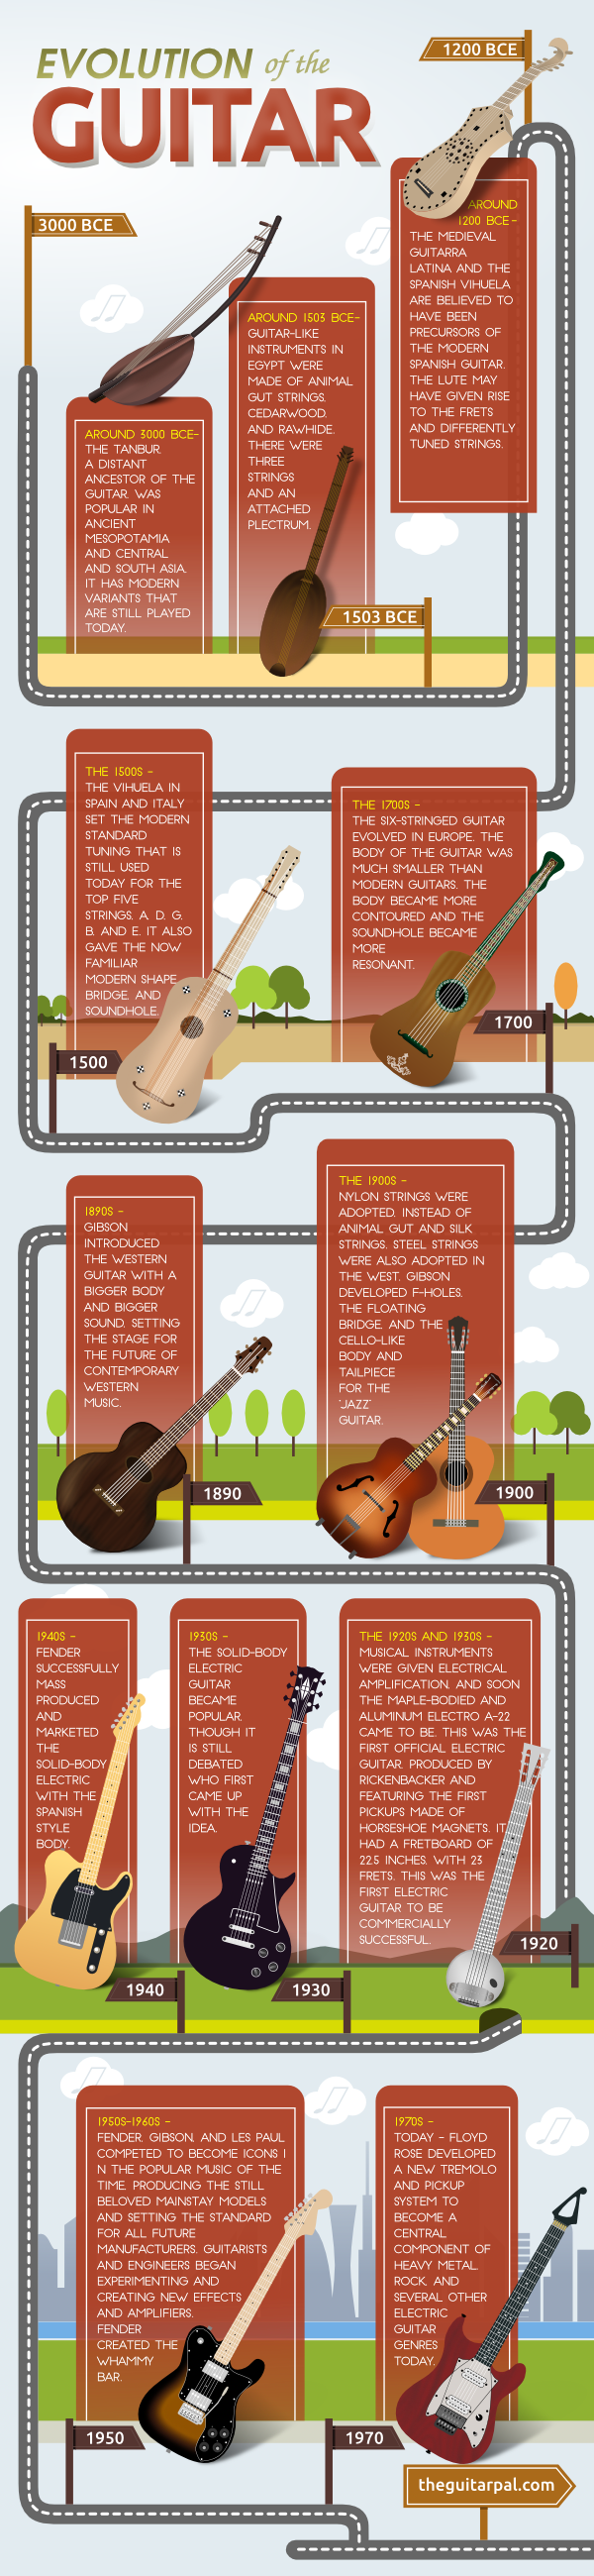 history of the guitar